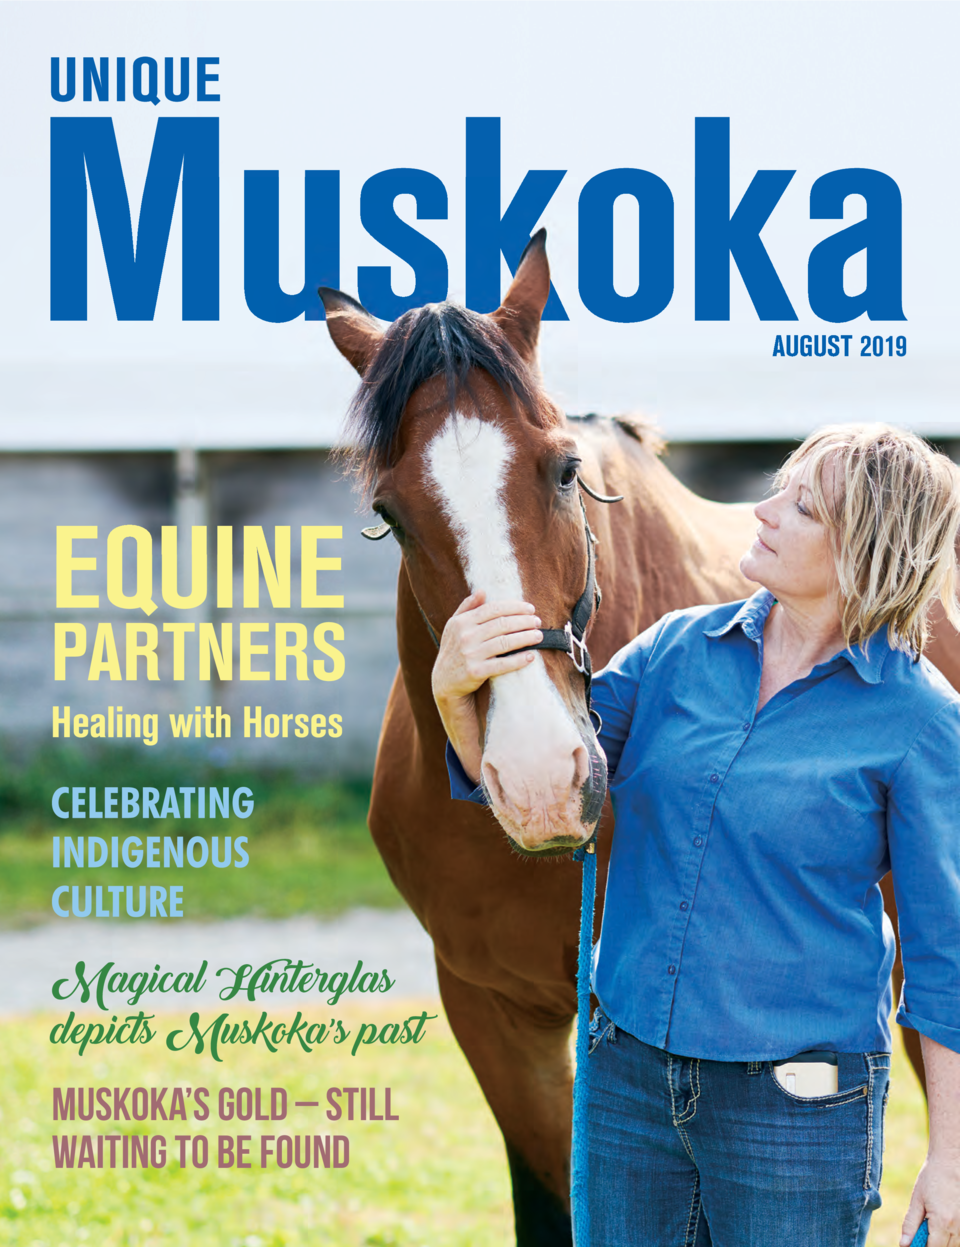 AUGUST 2019  EQUINE  PARTNERS Healing with Horses  Magical Hinterglas depicts Muskoka   s past  MUSKOKA   S GOLD     STILL...